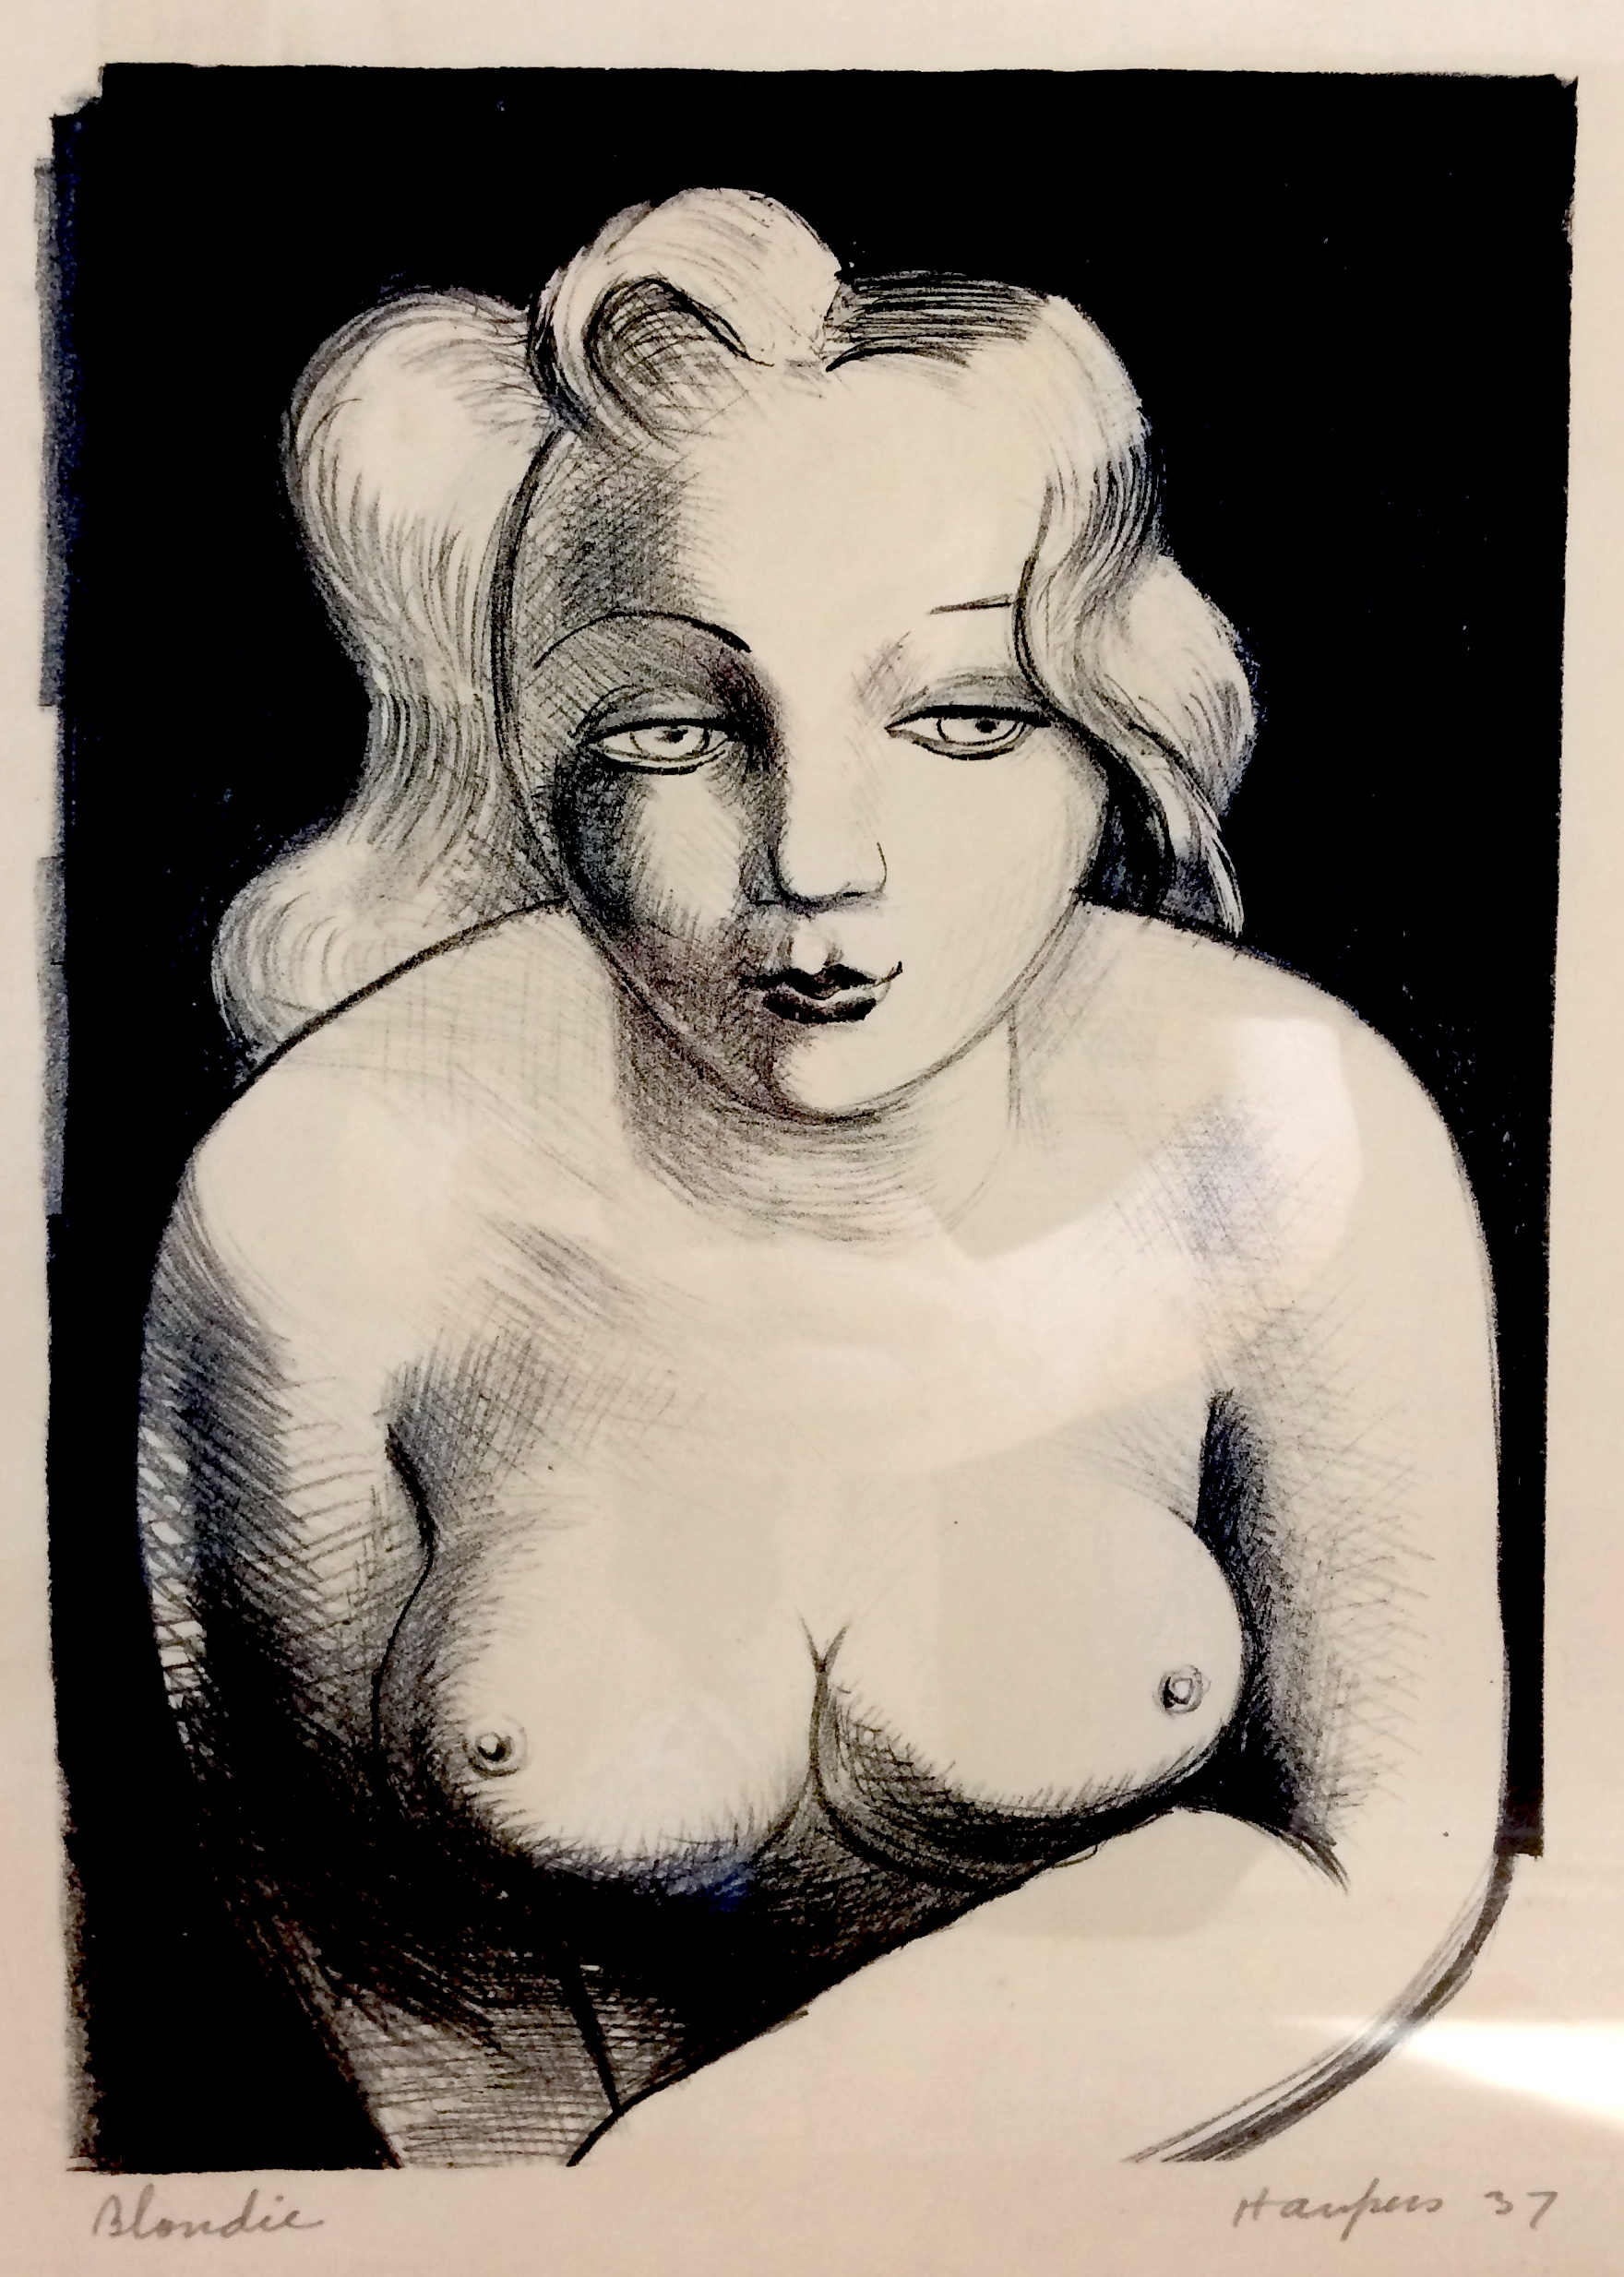 Clem Haupers    Blondie , 1937  Lithograph  Image: 13 x 9.5 inches  Framed: 20 ½ x 17 inches